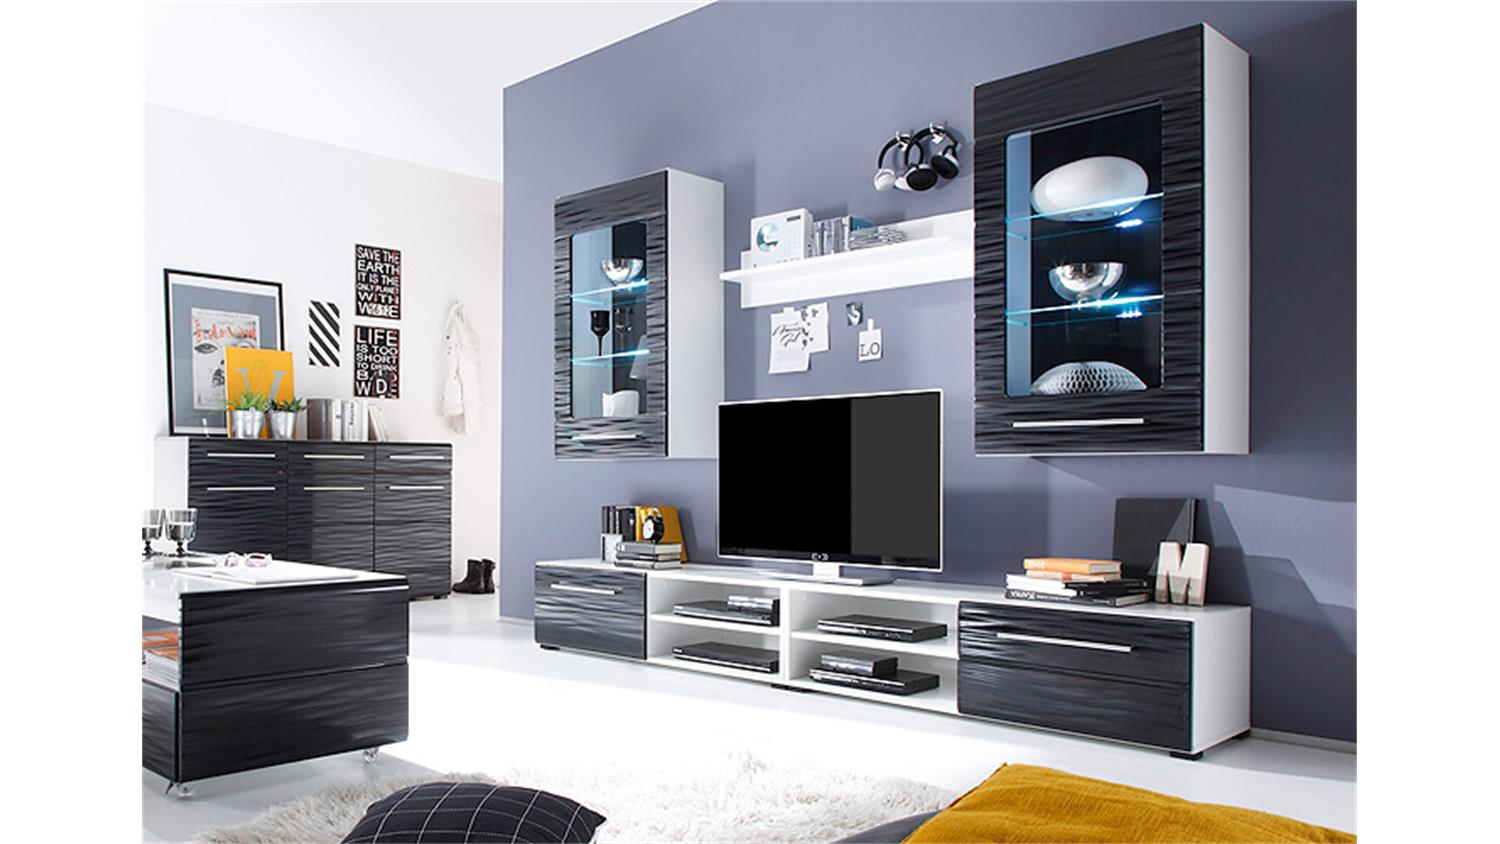 bilder kinderzimmer junge. Black Bedroom Furniture Sets. Home Design Ideas